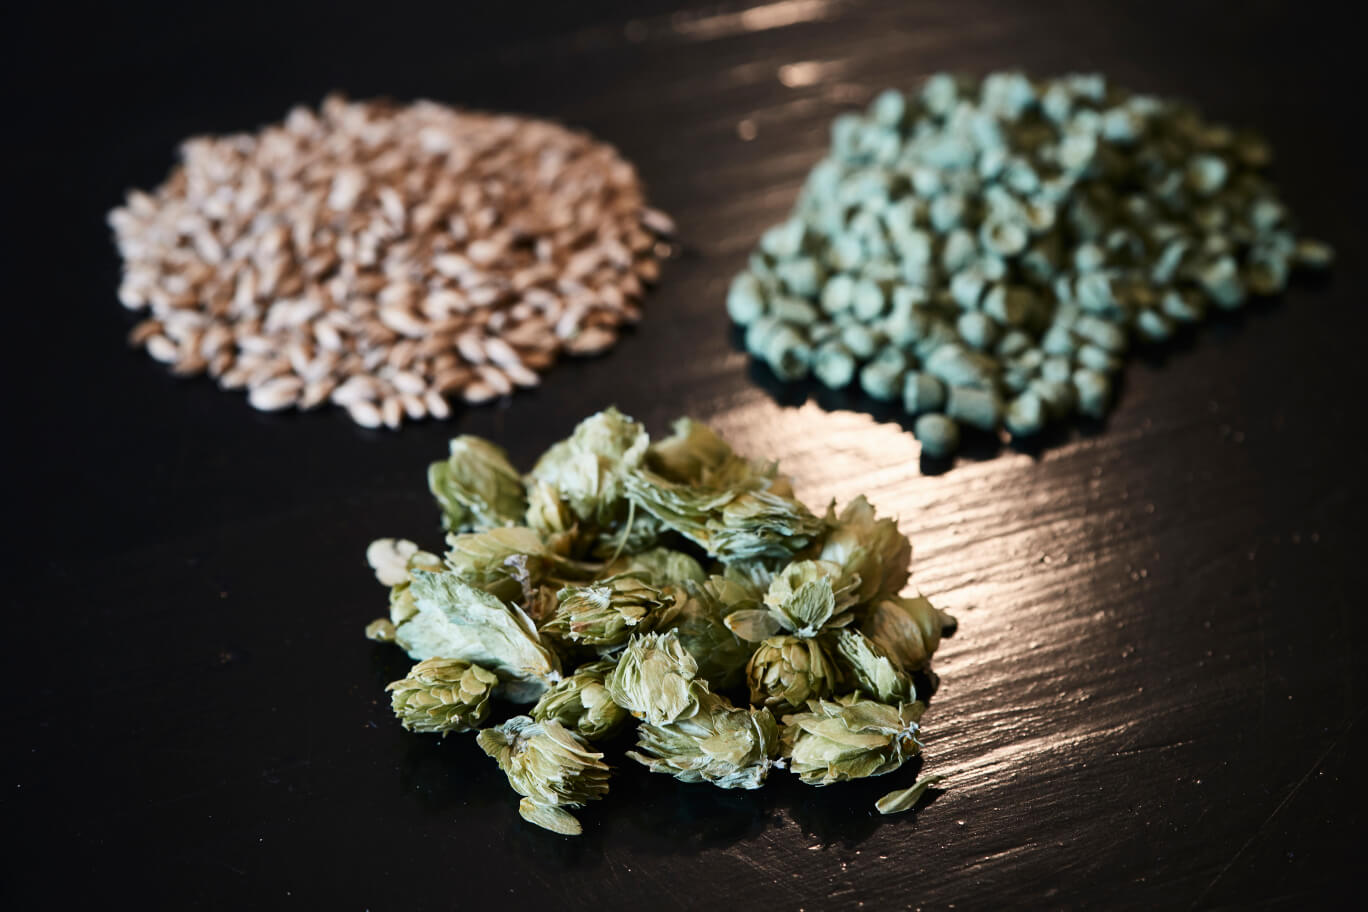 Hops, hops pellets and grains